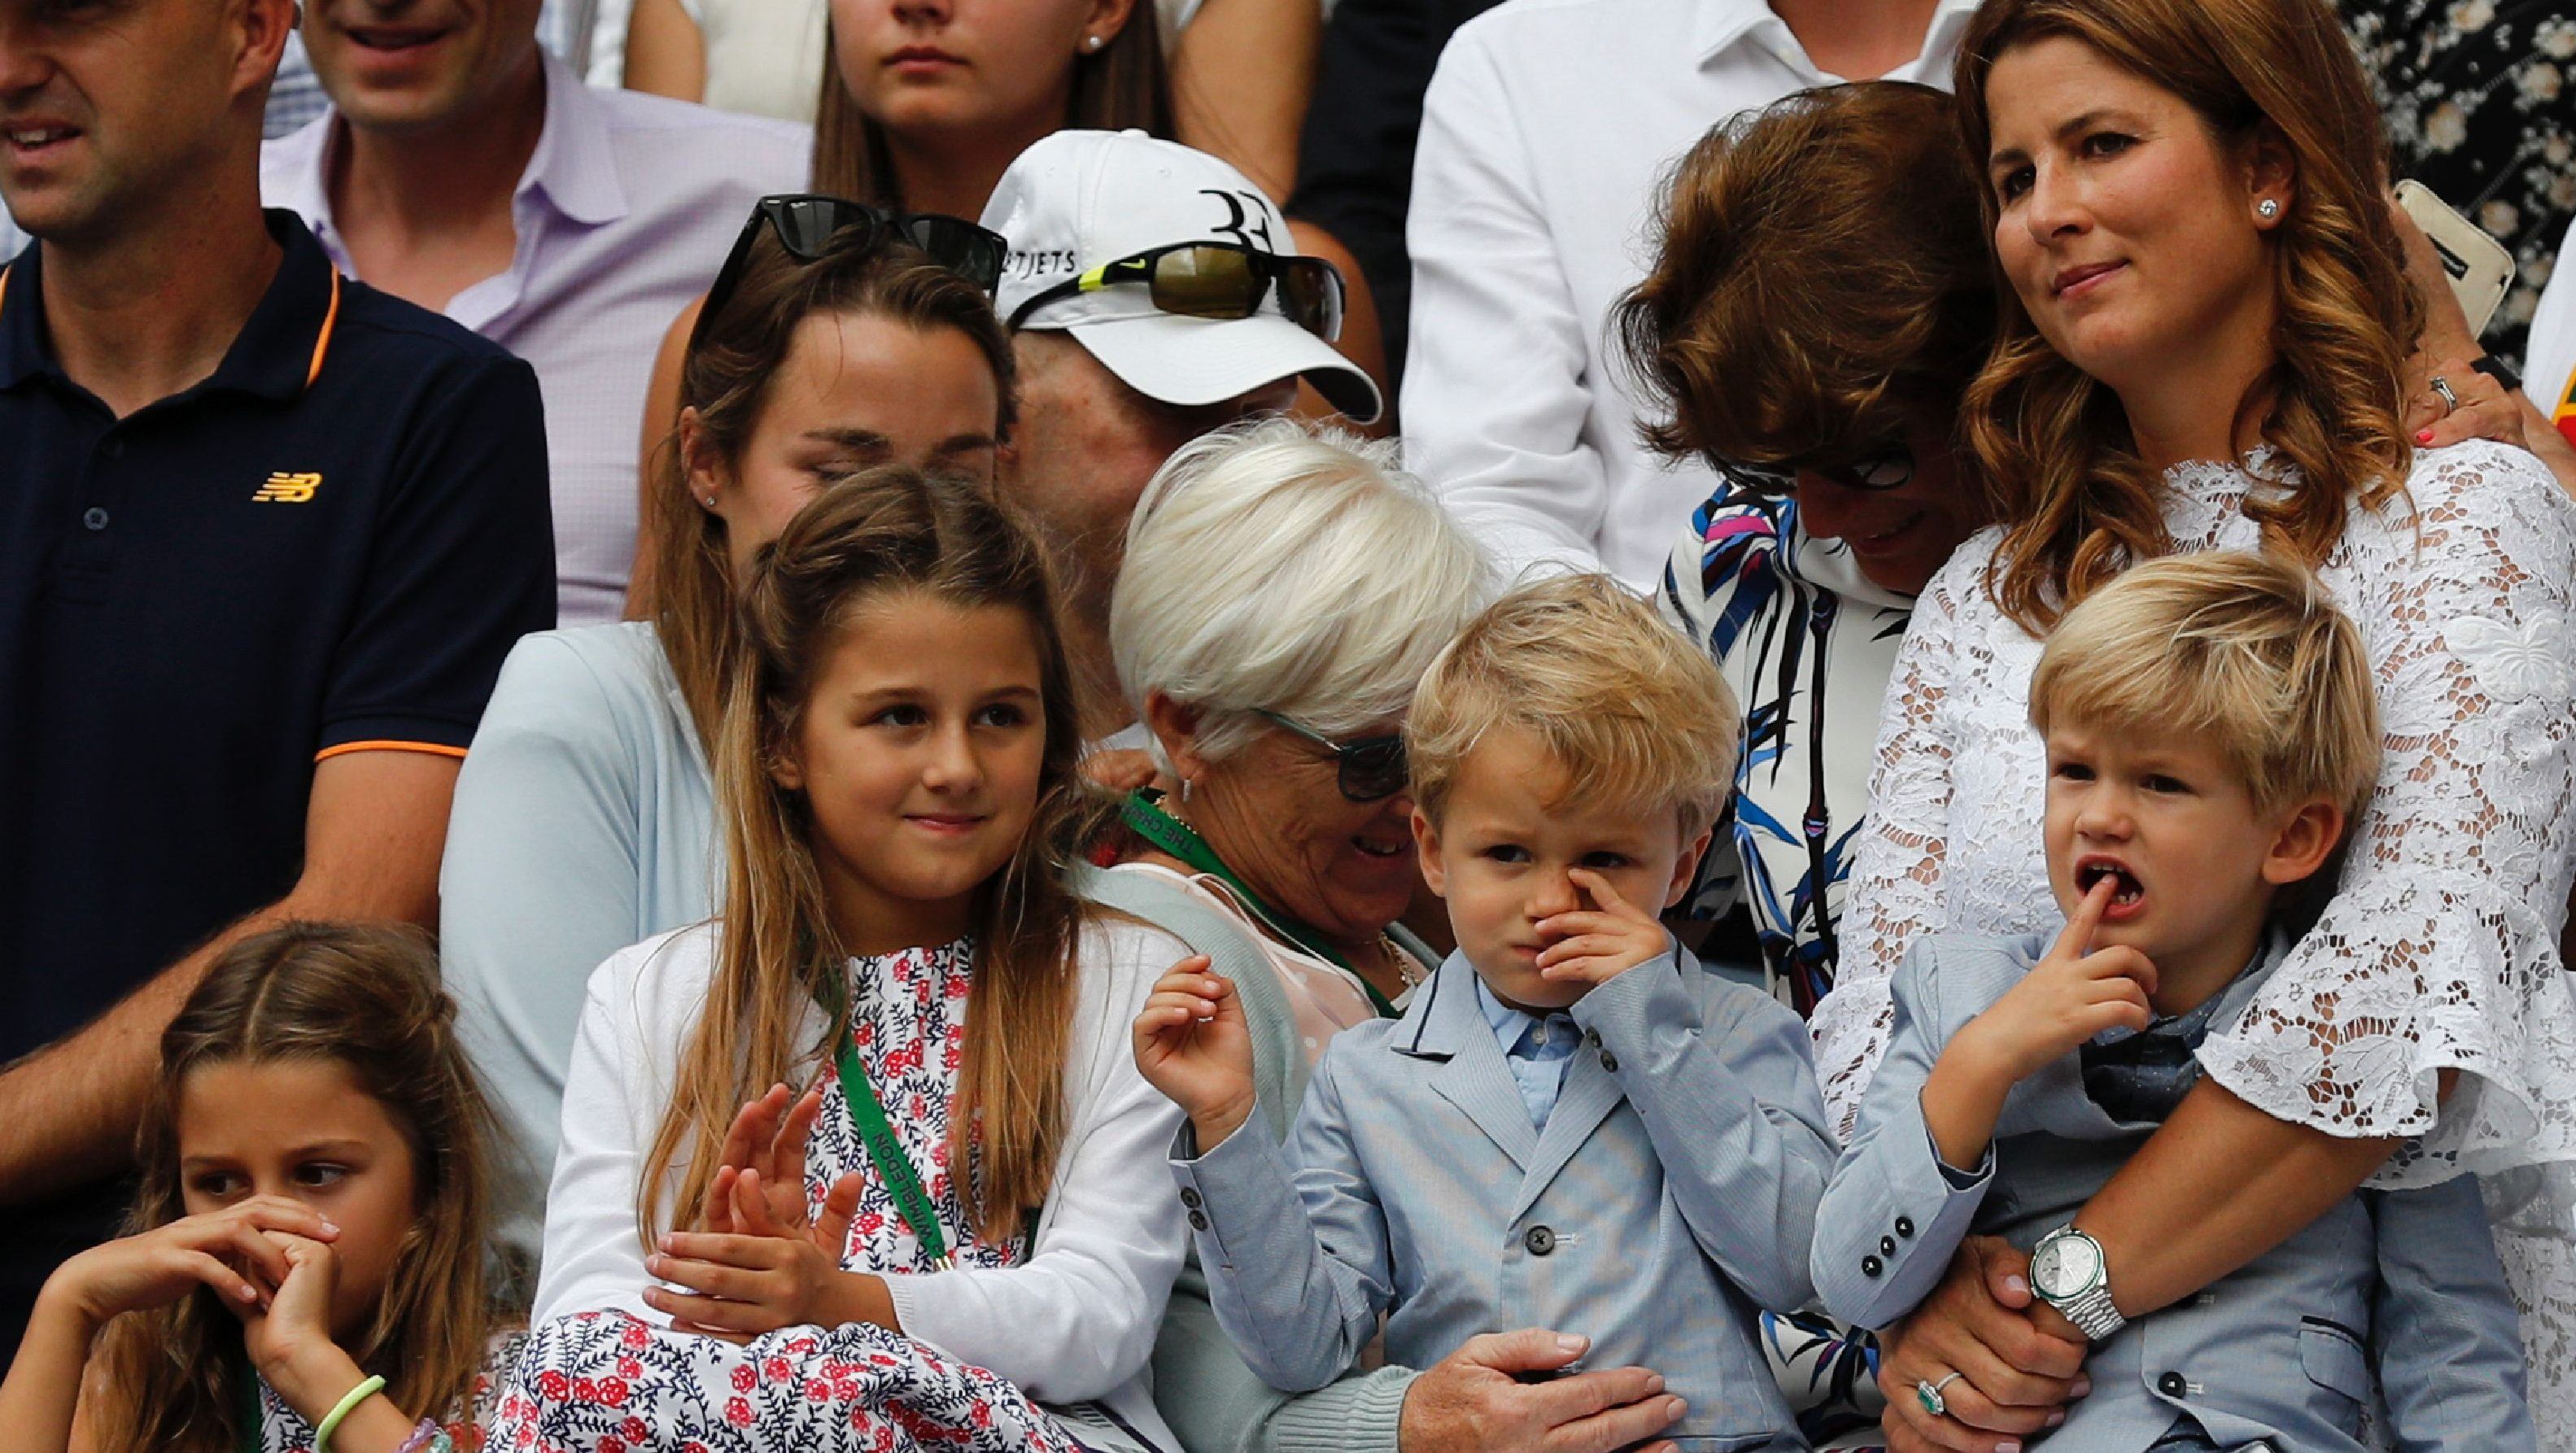 Roger Federer's Kids Include 2 Sets of Twins